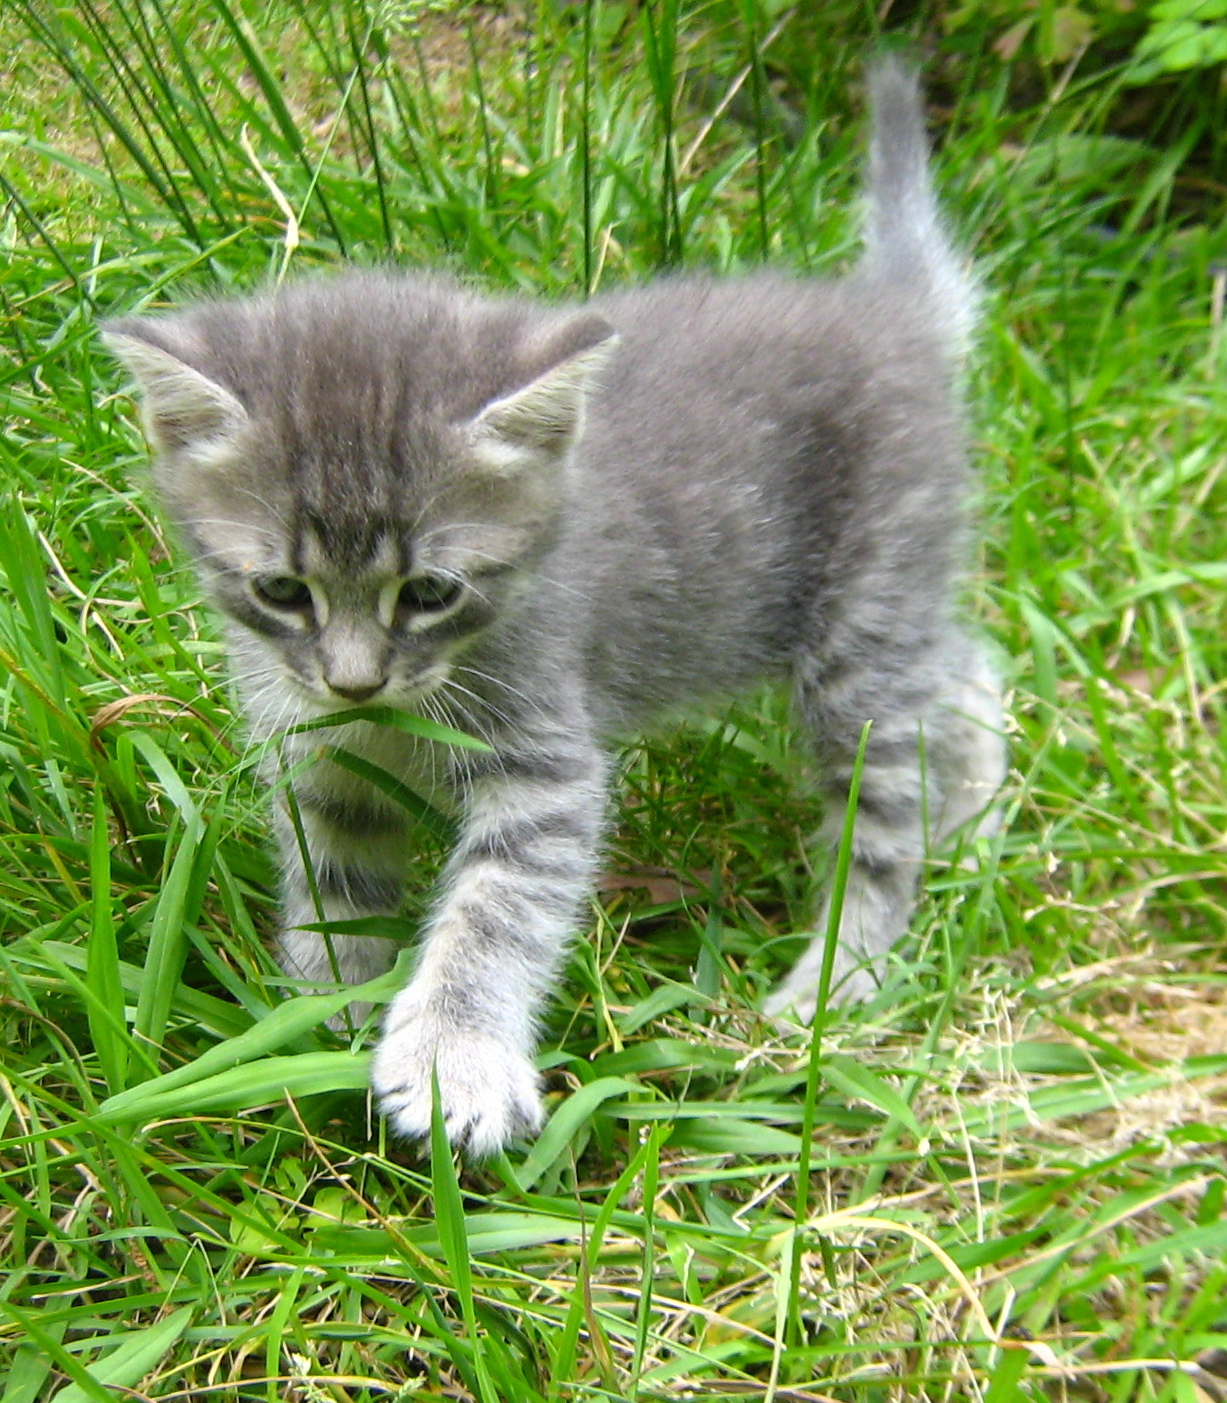 cute kittens images adorable gray kittens hd wallpaper and background photos